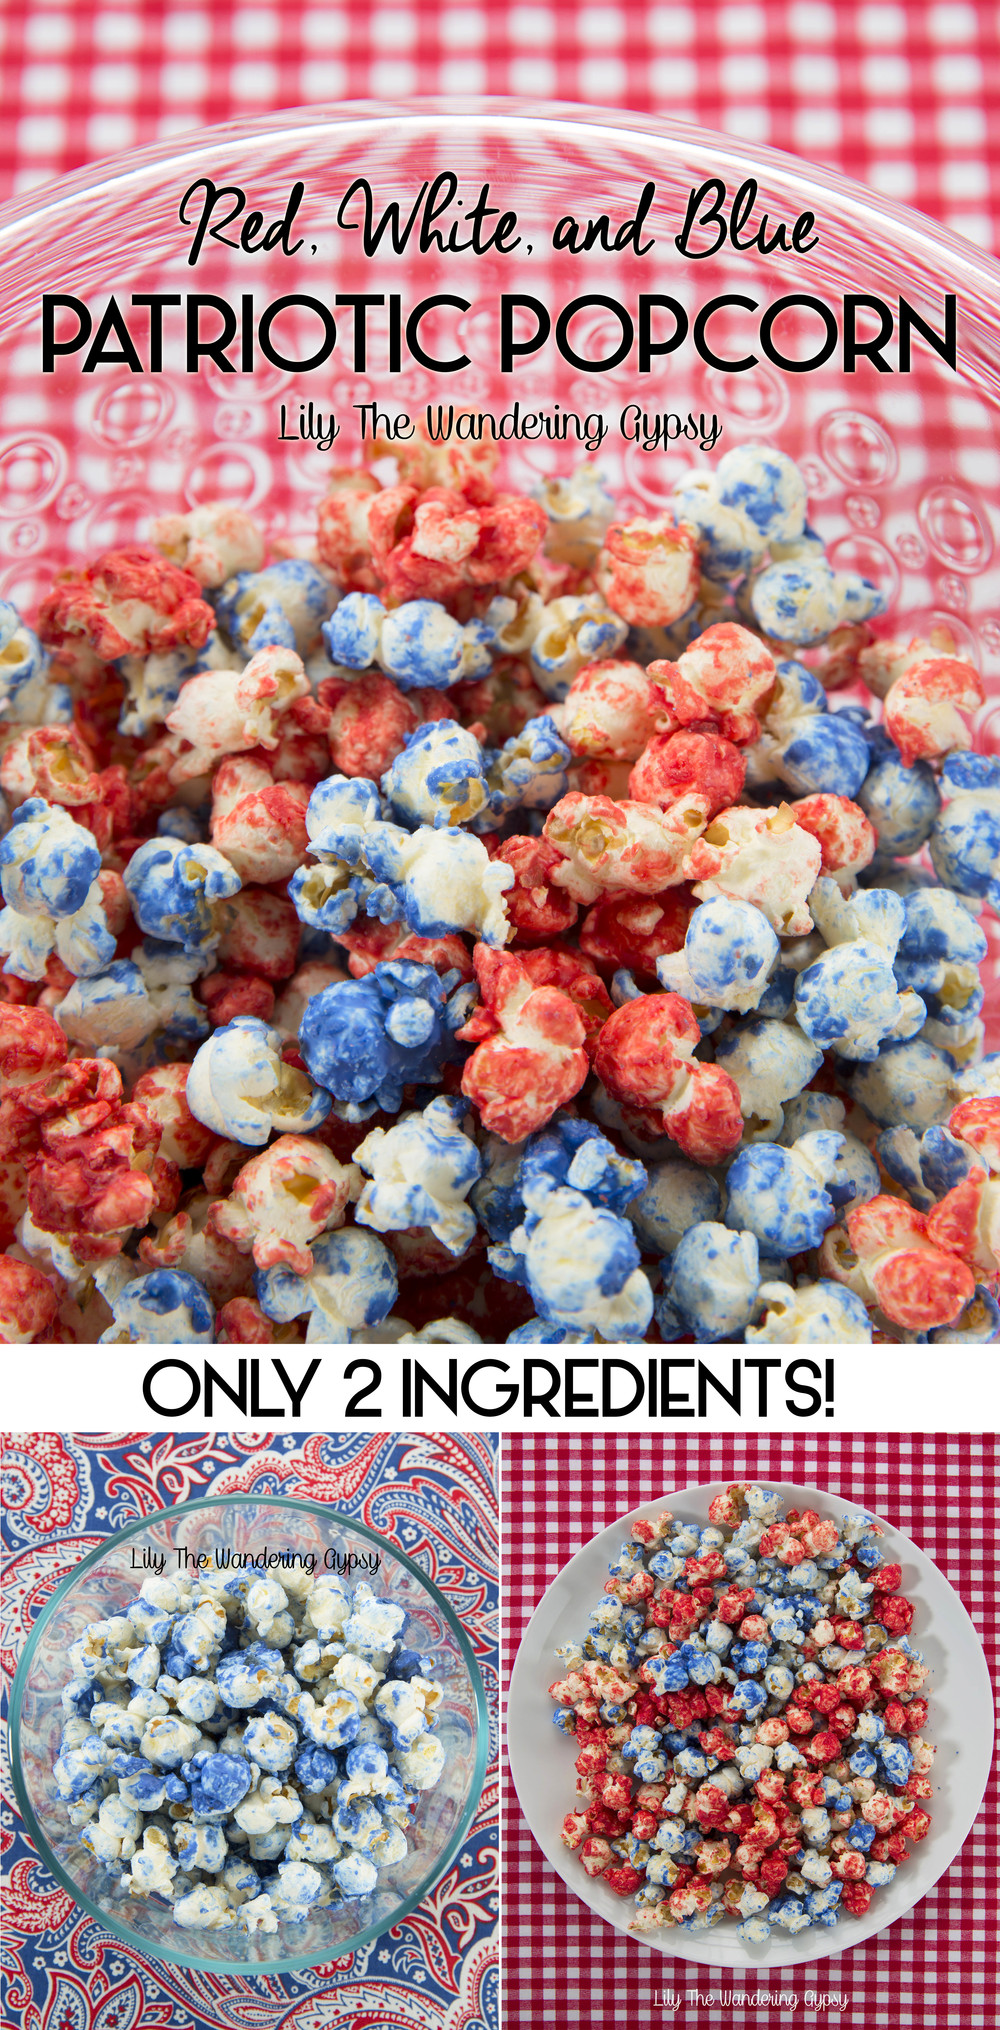 Patriotic Pop Corn